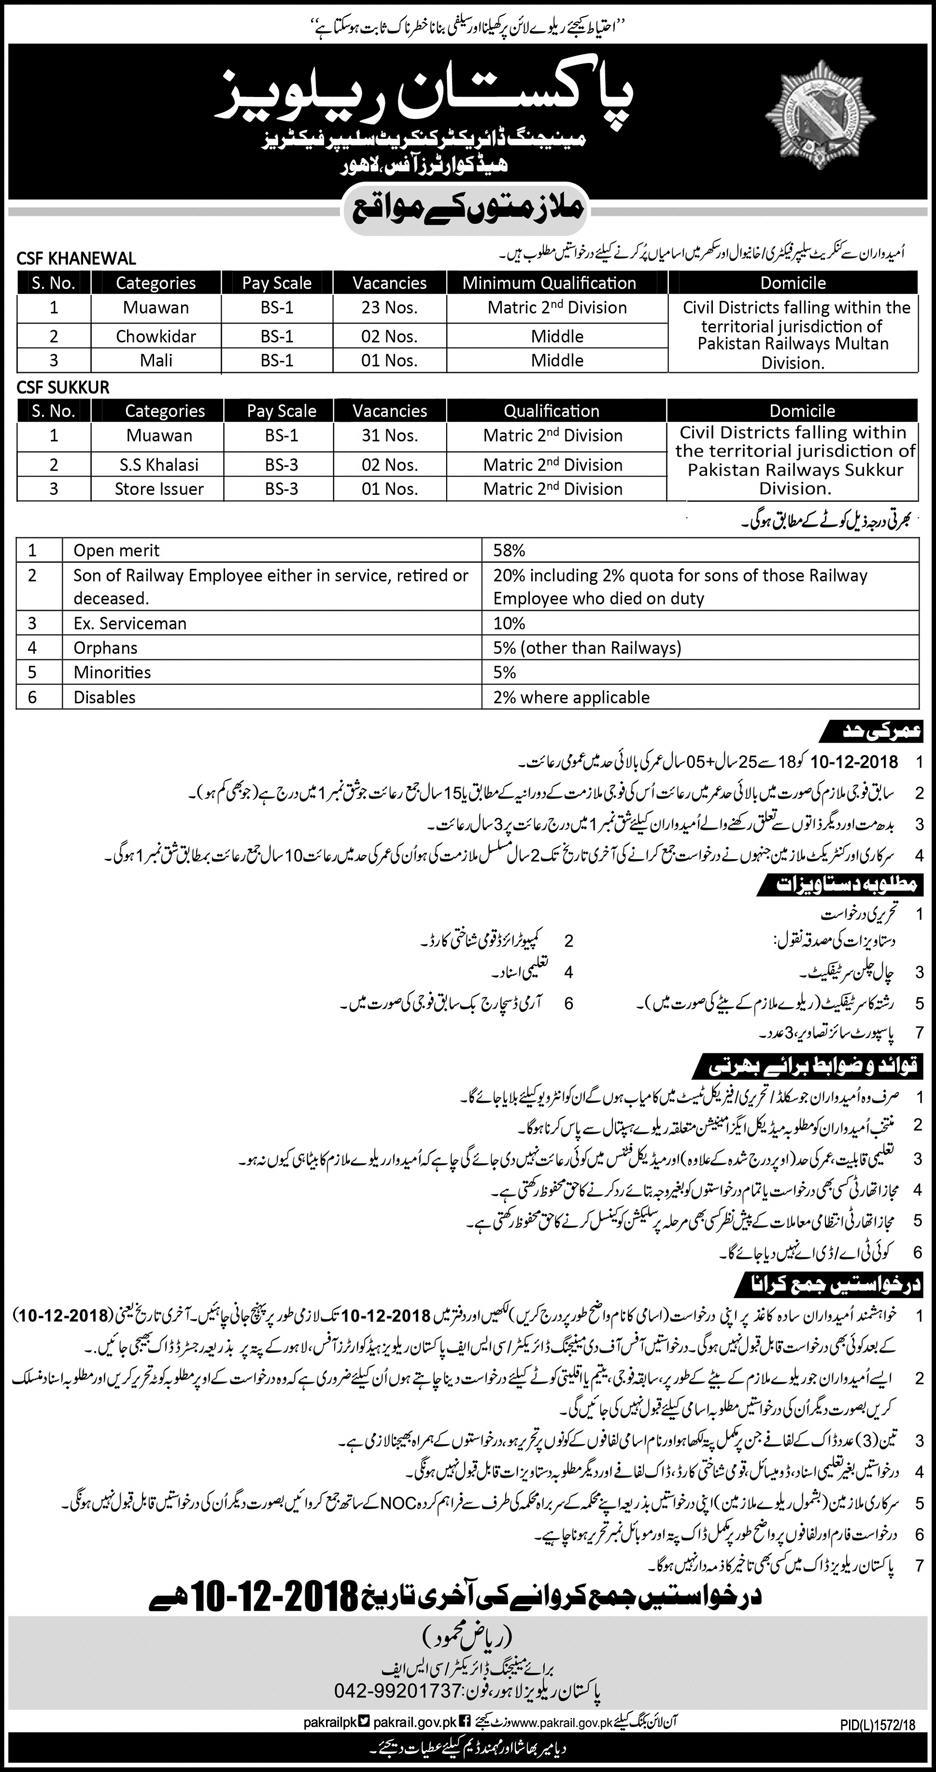 Pakistan Railways CSF Jobs 2018